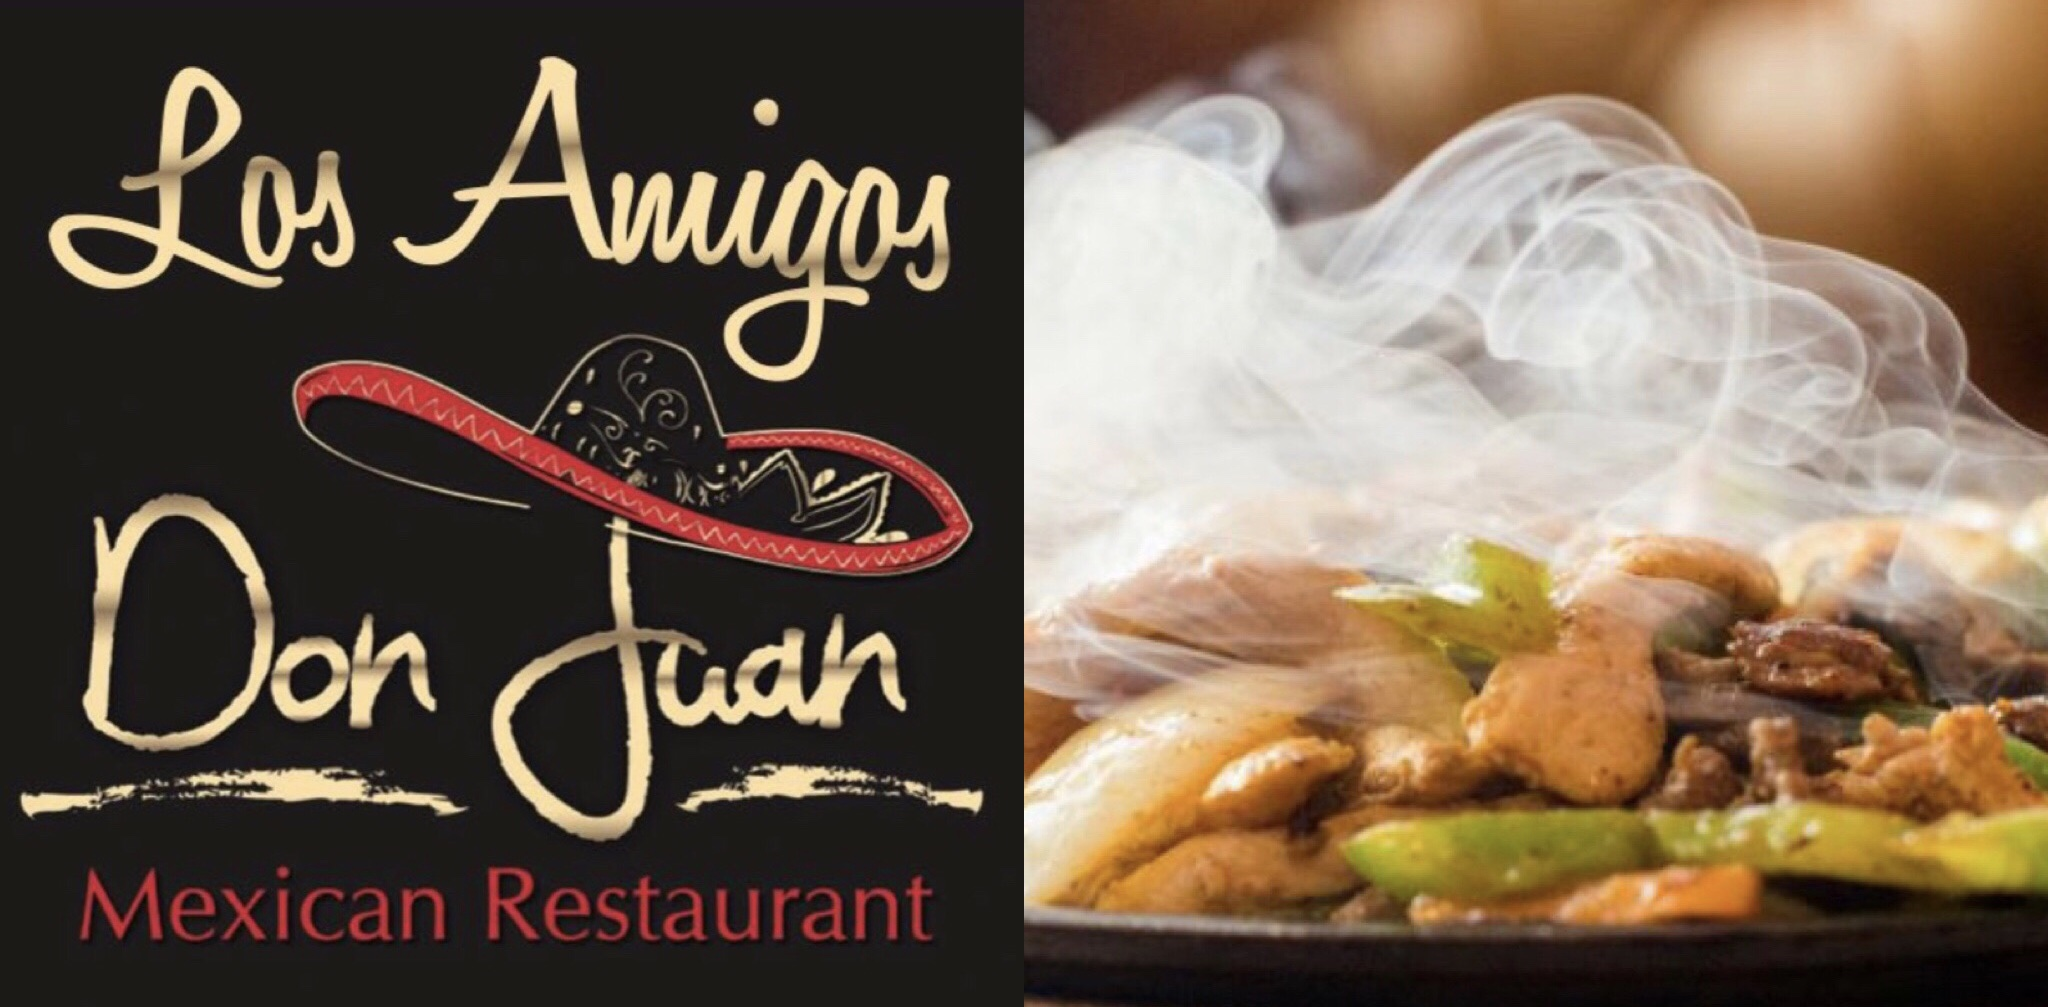 Don Juan / Los Amigos Restaurants